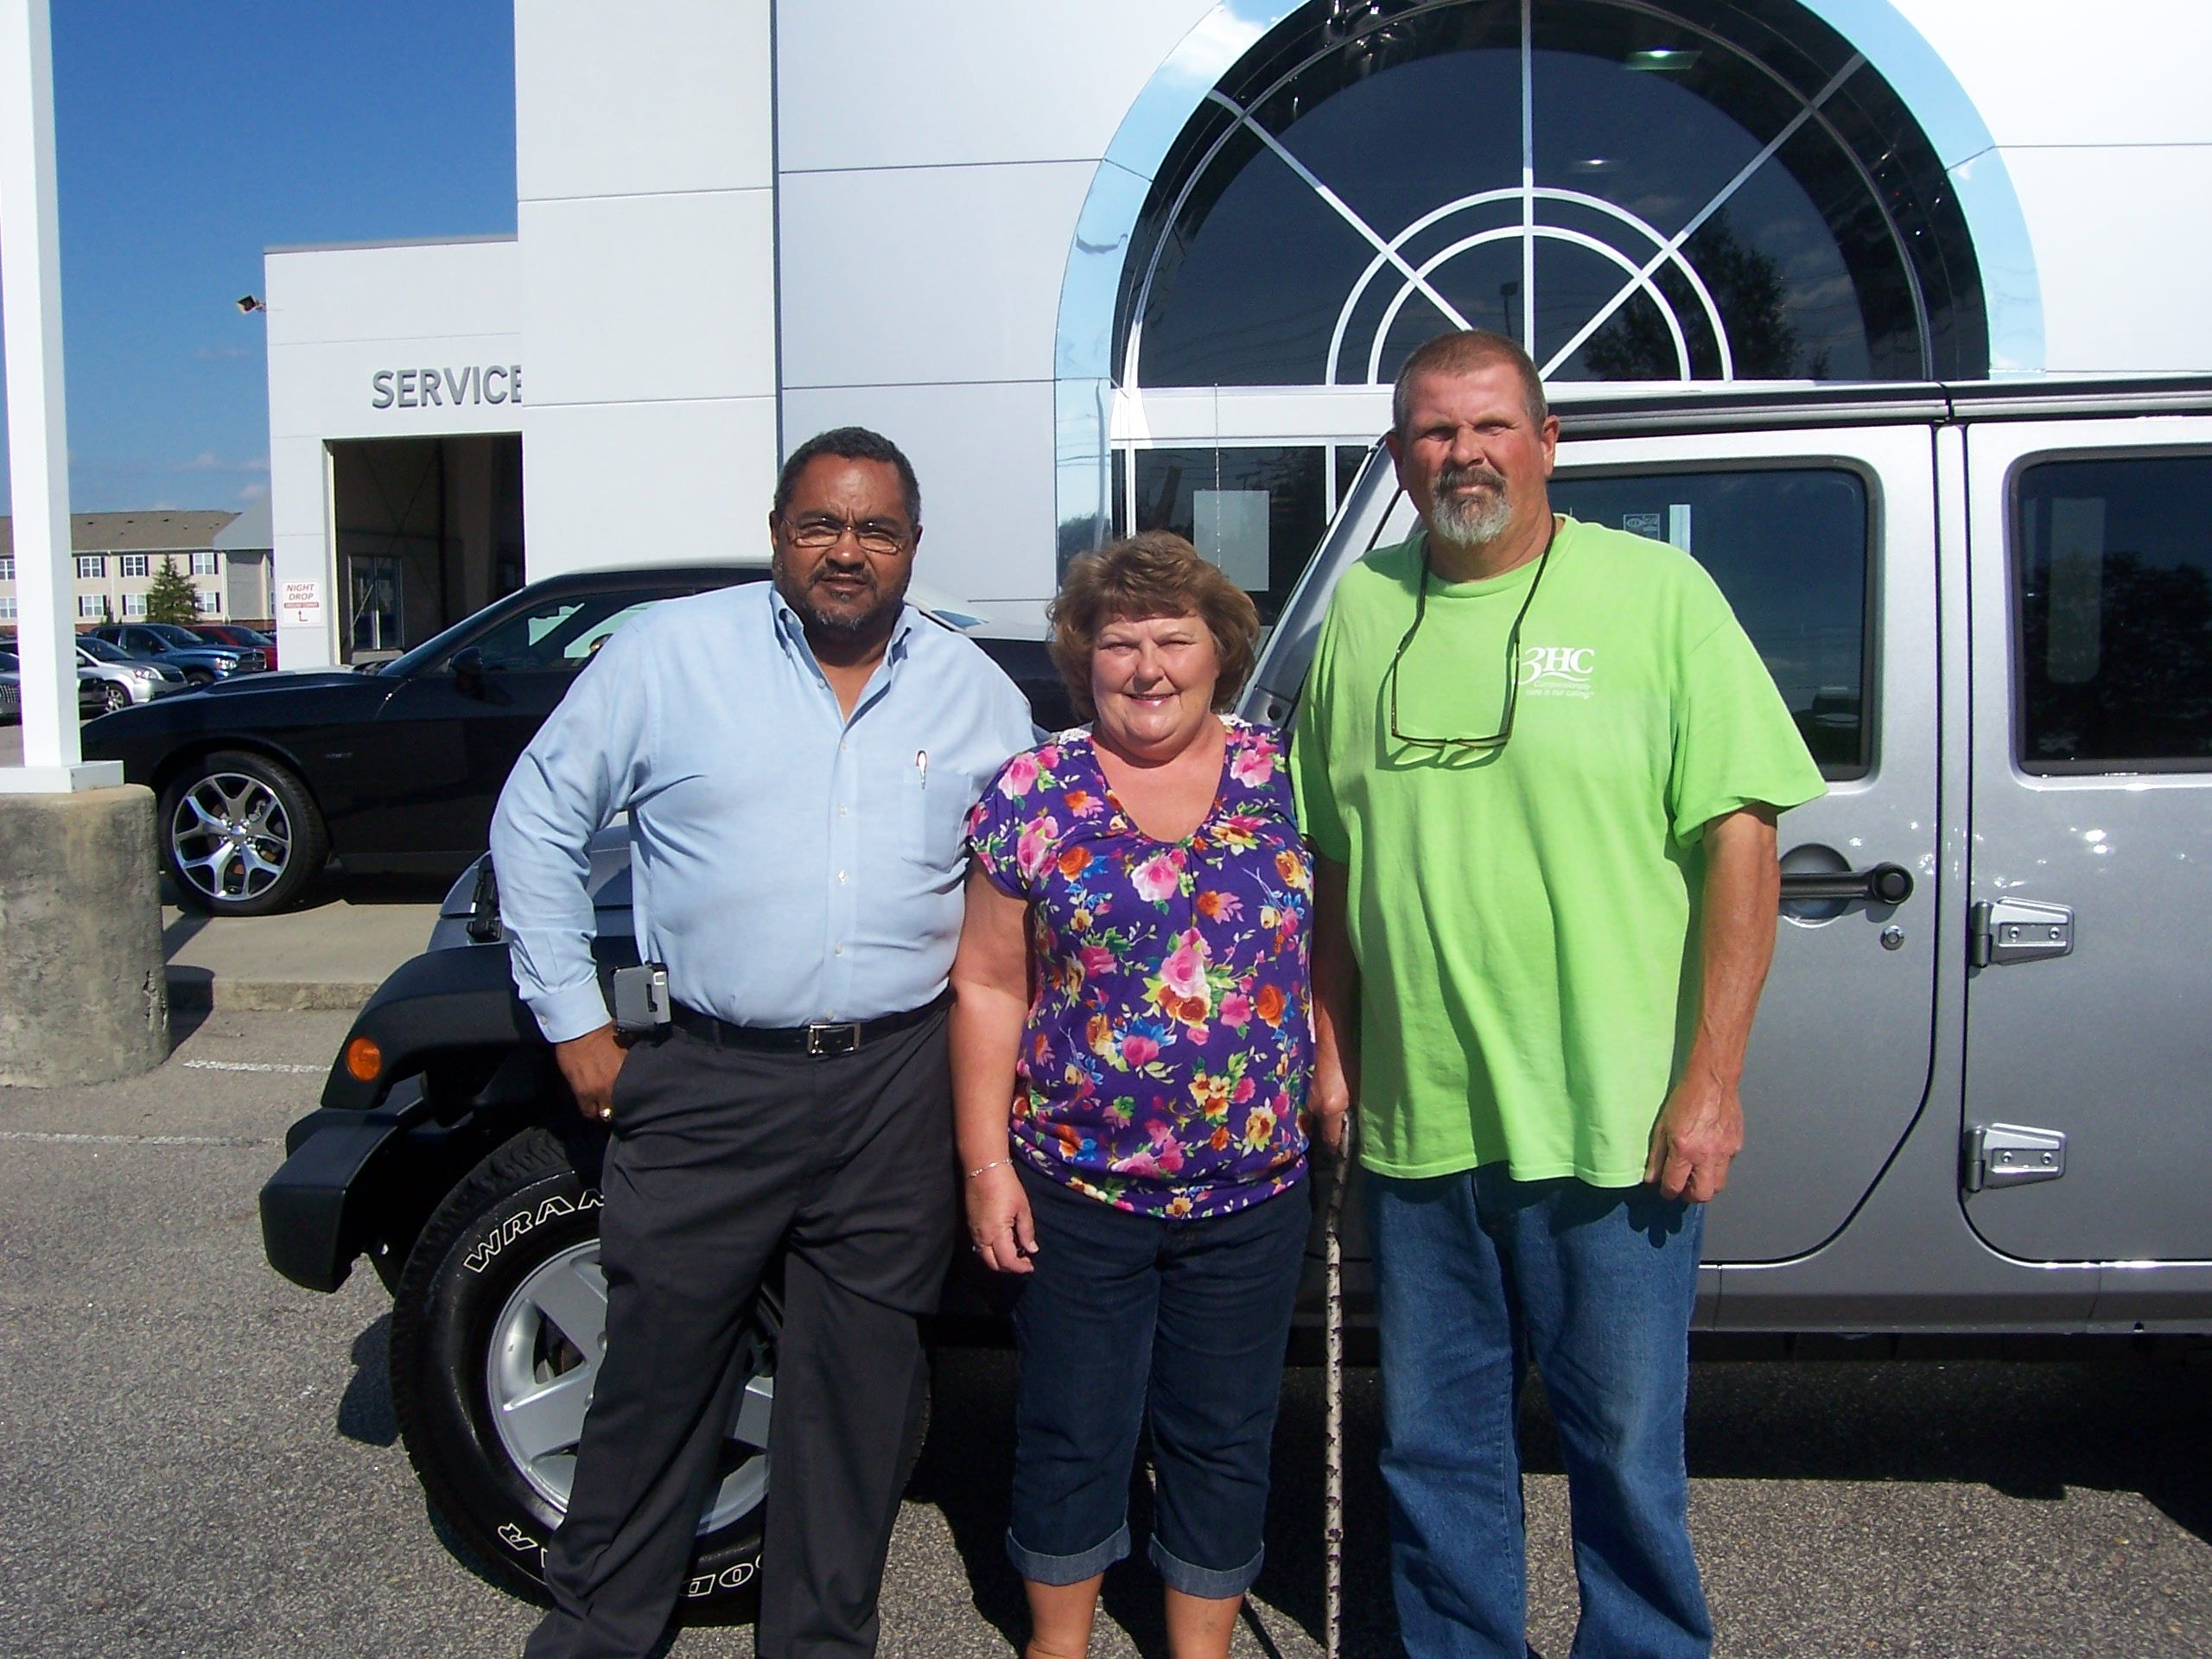 Sam and Kathy from Goldsboro NC found their deal at Lee